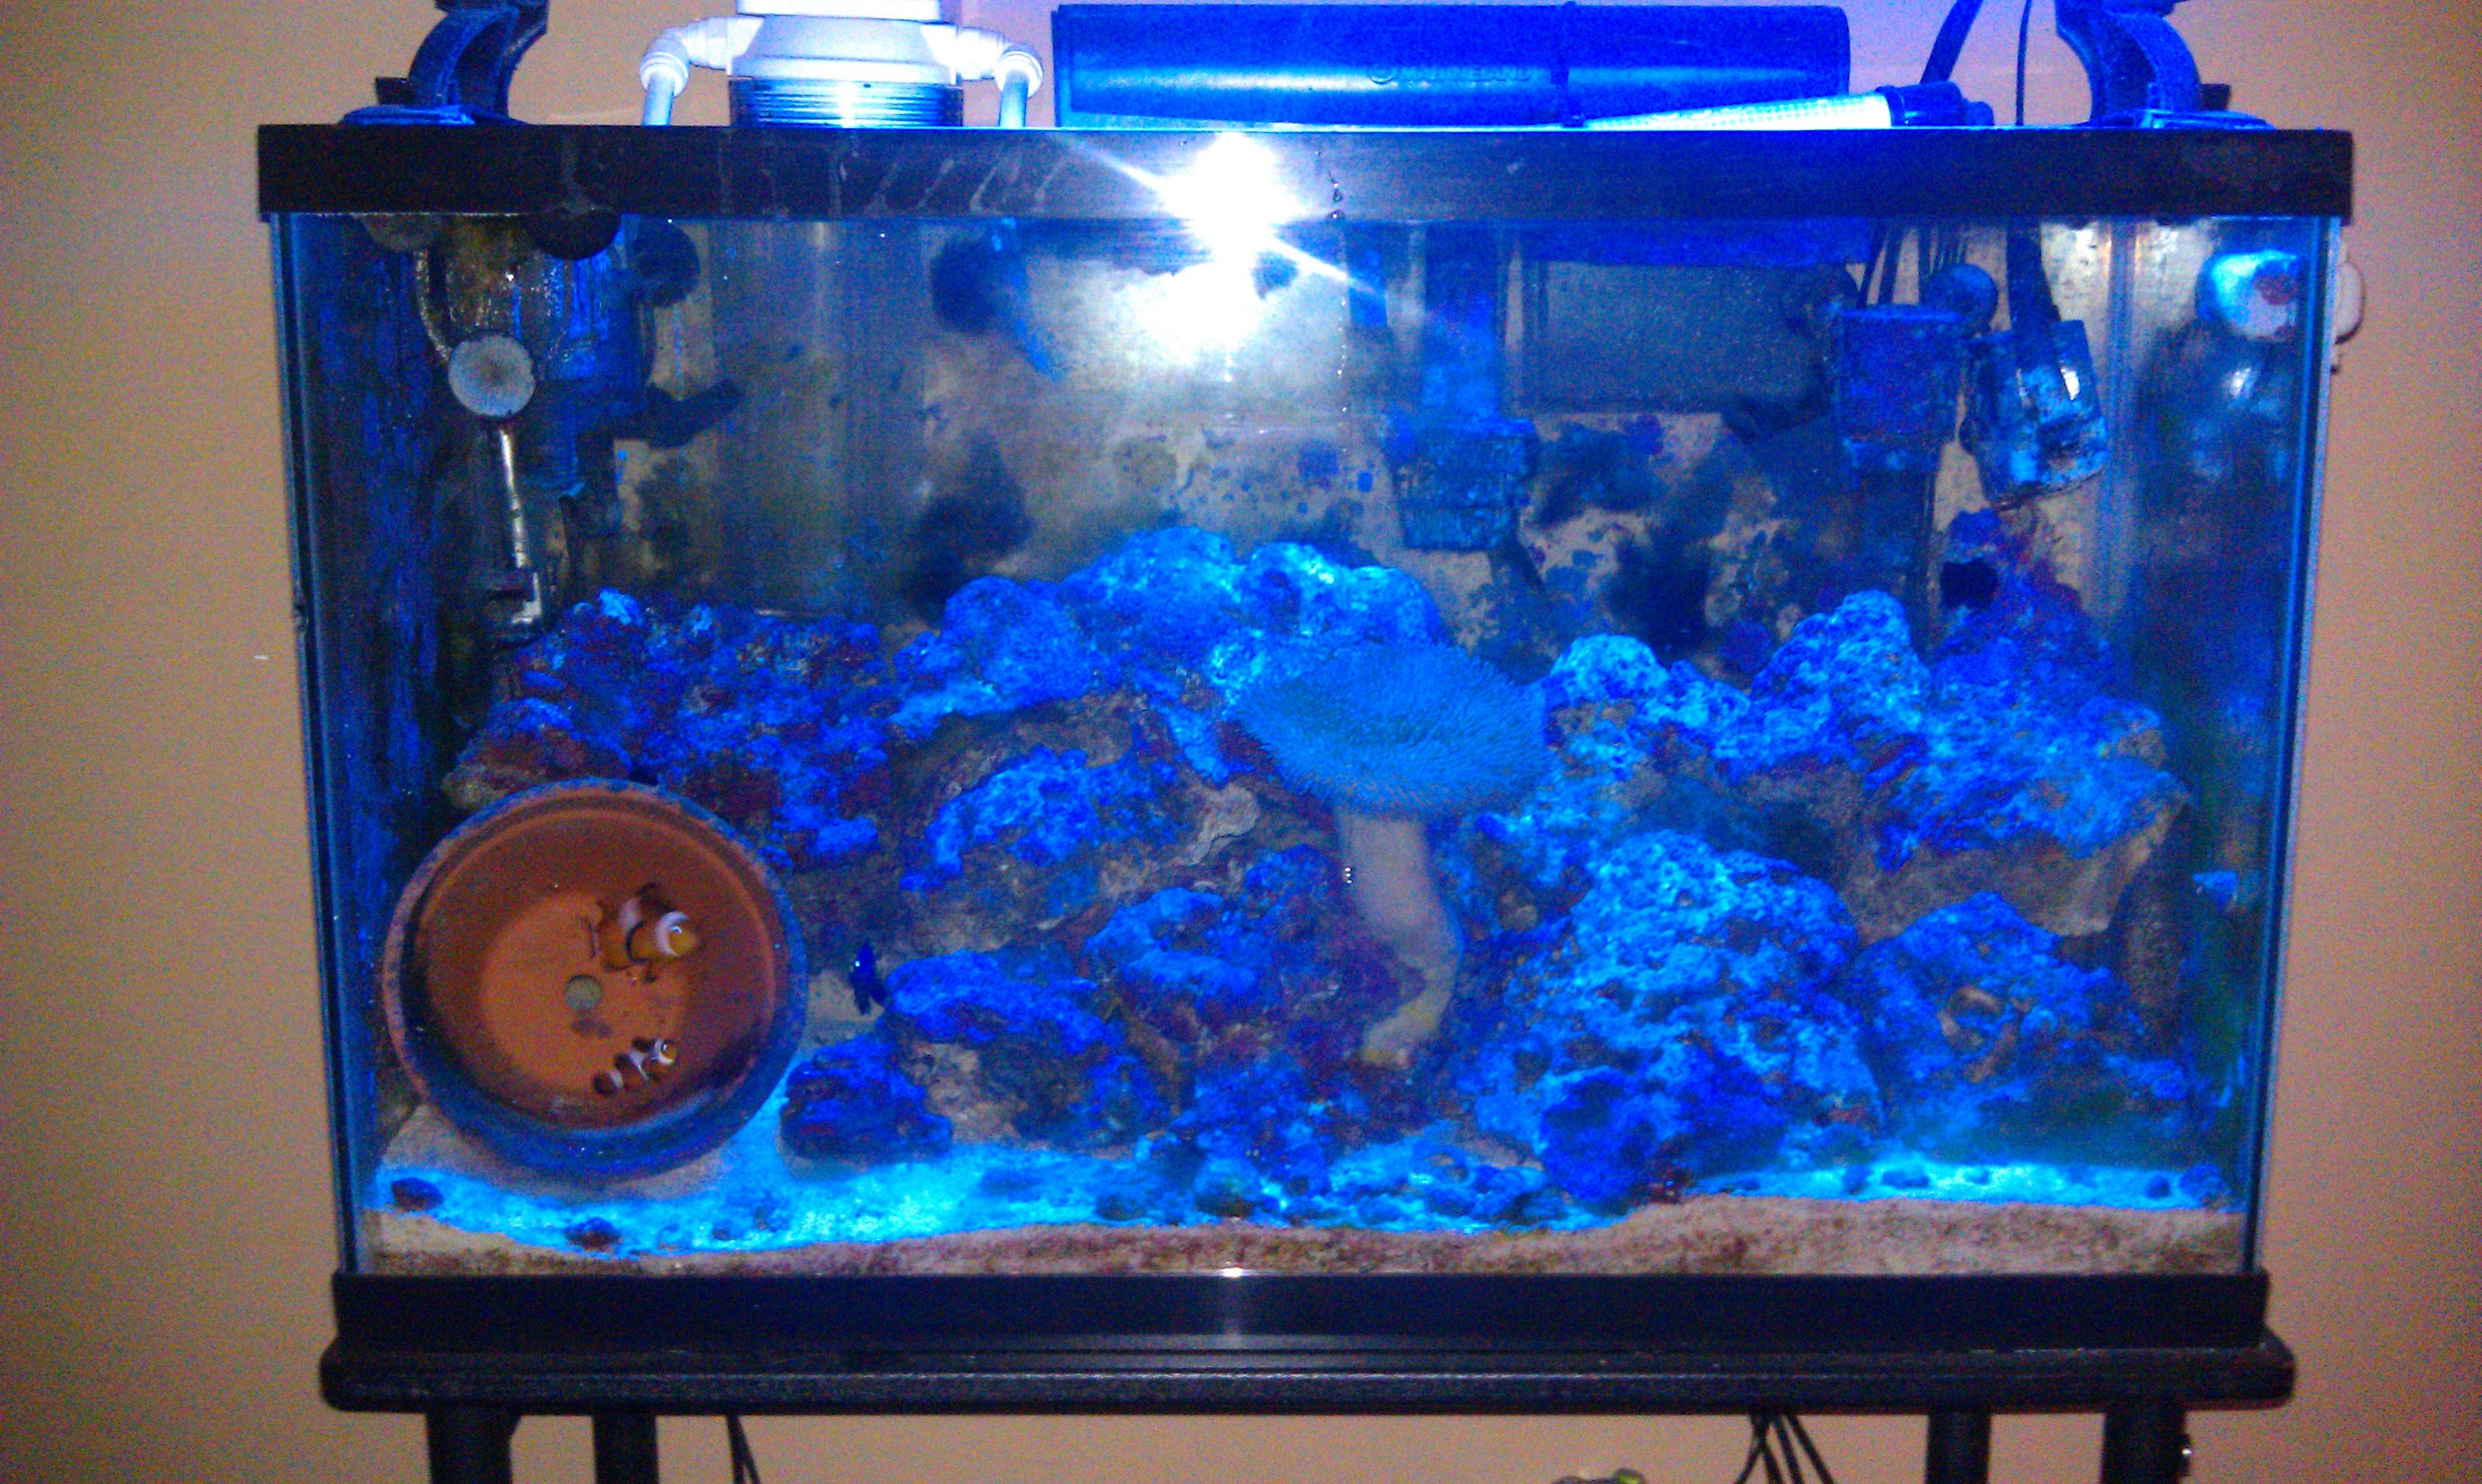 30 Gallon Fish Tank : 30 gallon saltwater tank 6 years old Saltwaterfish Forum